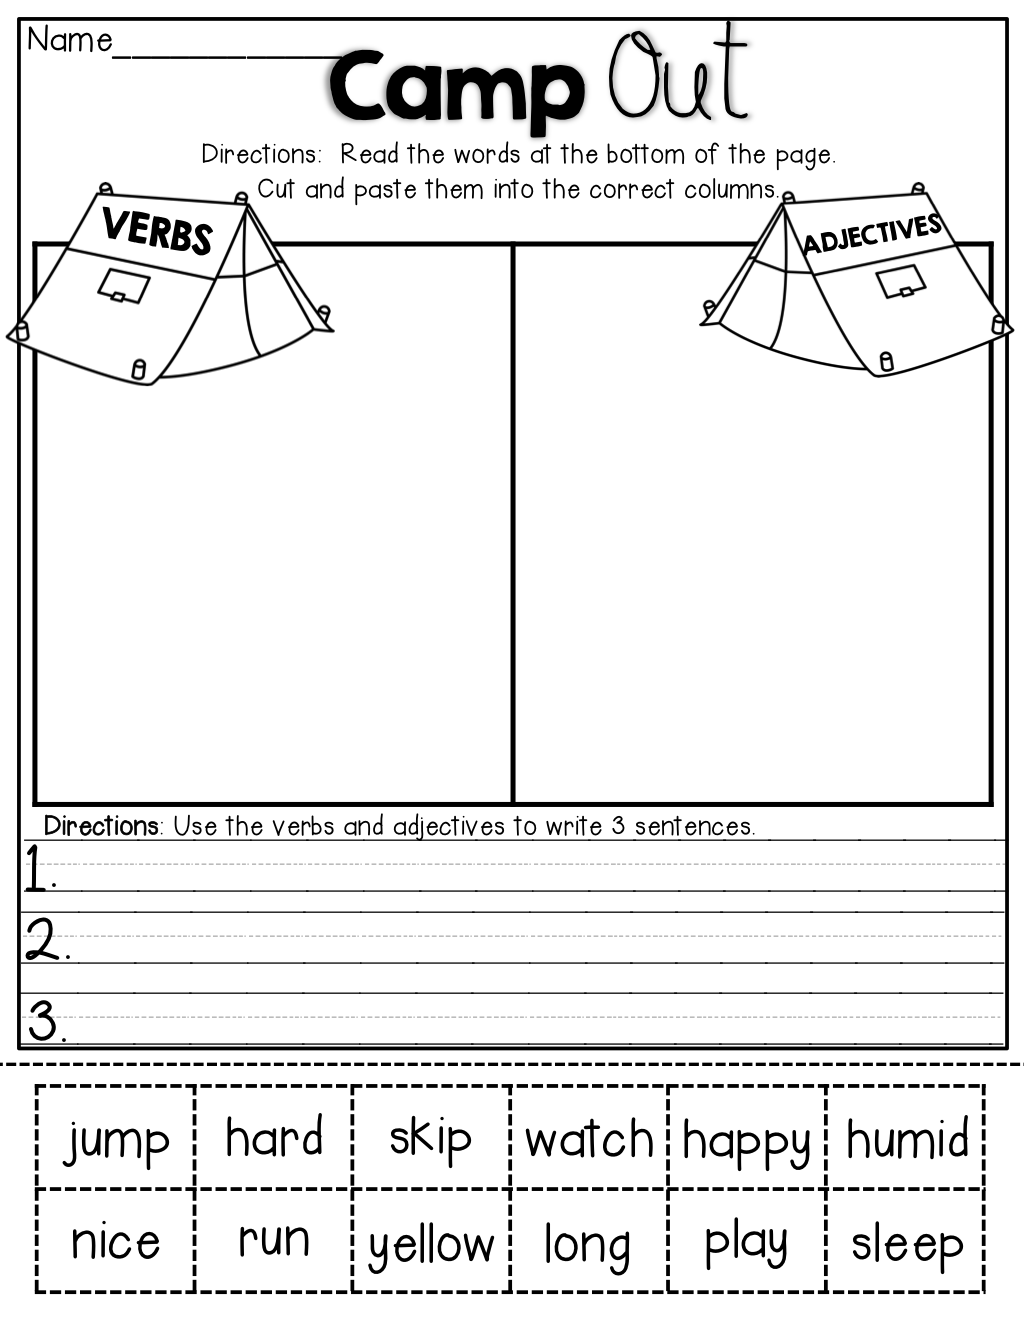 Verbs And Adjectives Cut And Sort The Verbs And